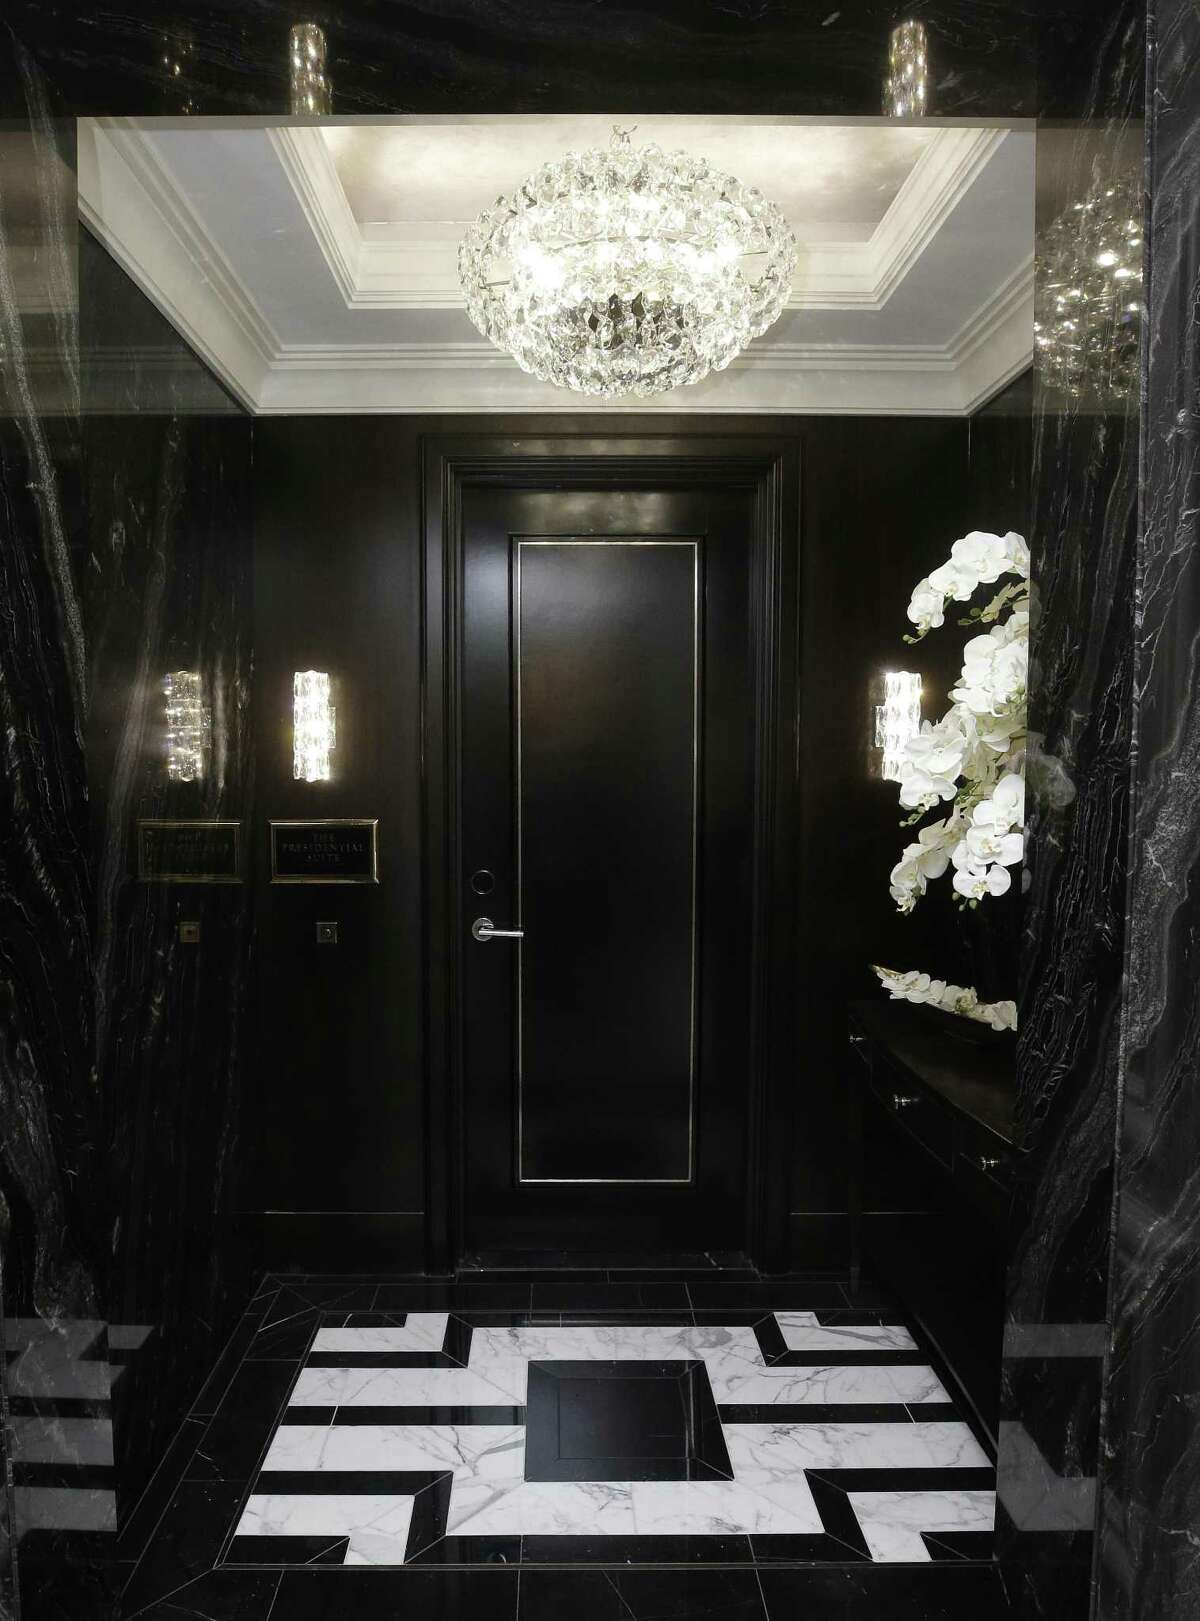 A view one of the entry doors for the Presidential Suite at the Post Oak Hotel, 1600 West Loop South, Tuesday, June 5, 2018, in Houston. ( Melissa Phillip / Houston Chronicle )